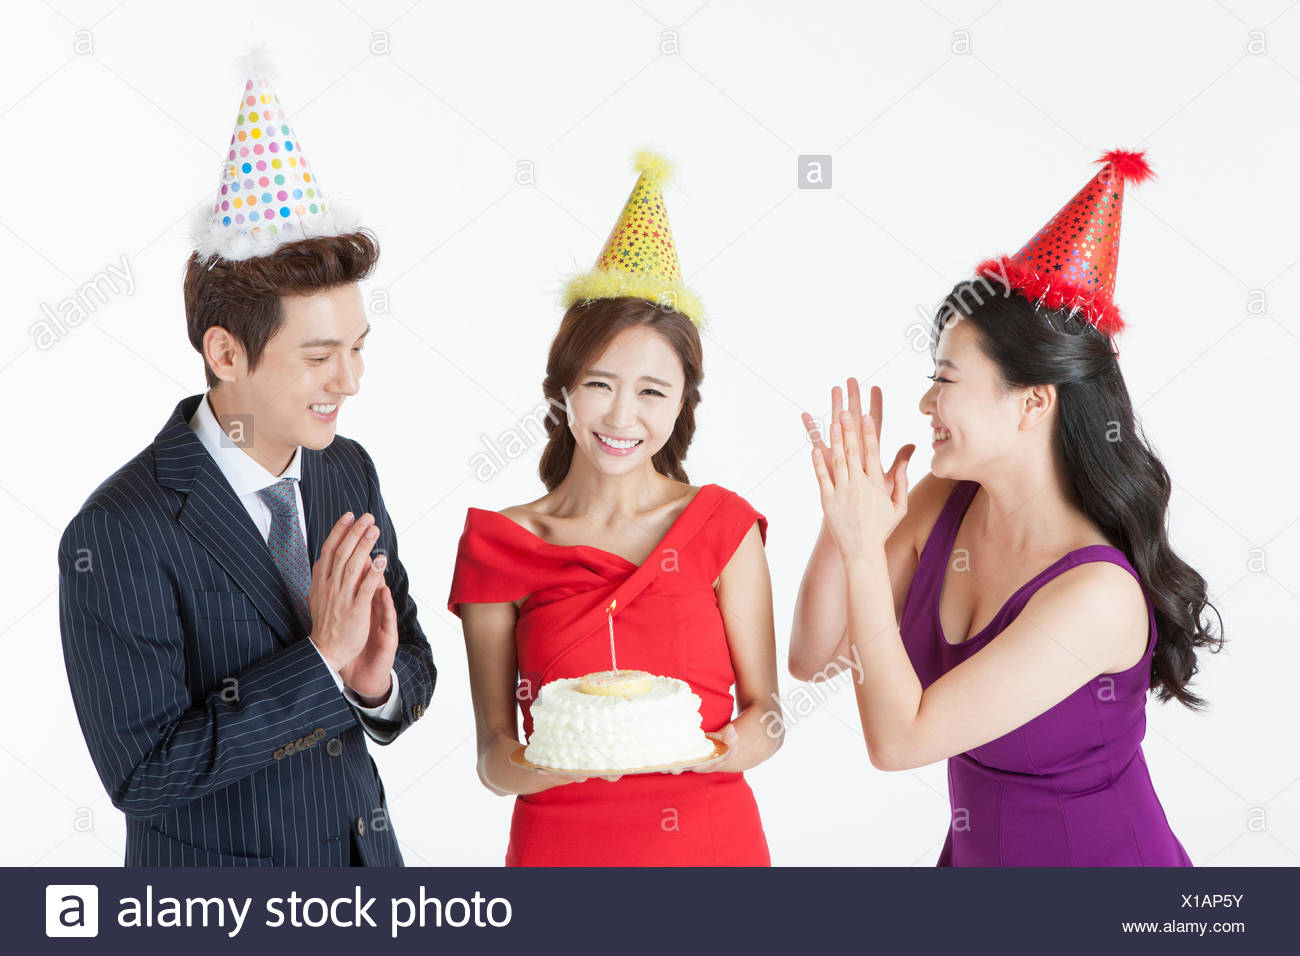 Three Young Adults Celebrating The Womans Birthday With A Cake All In Party Hat